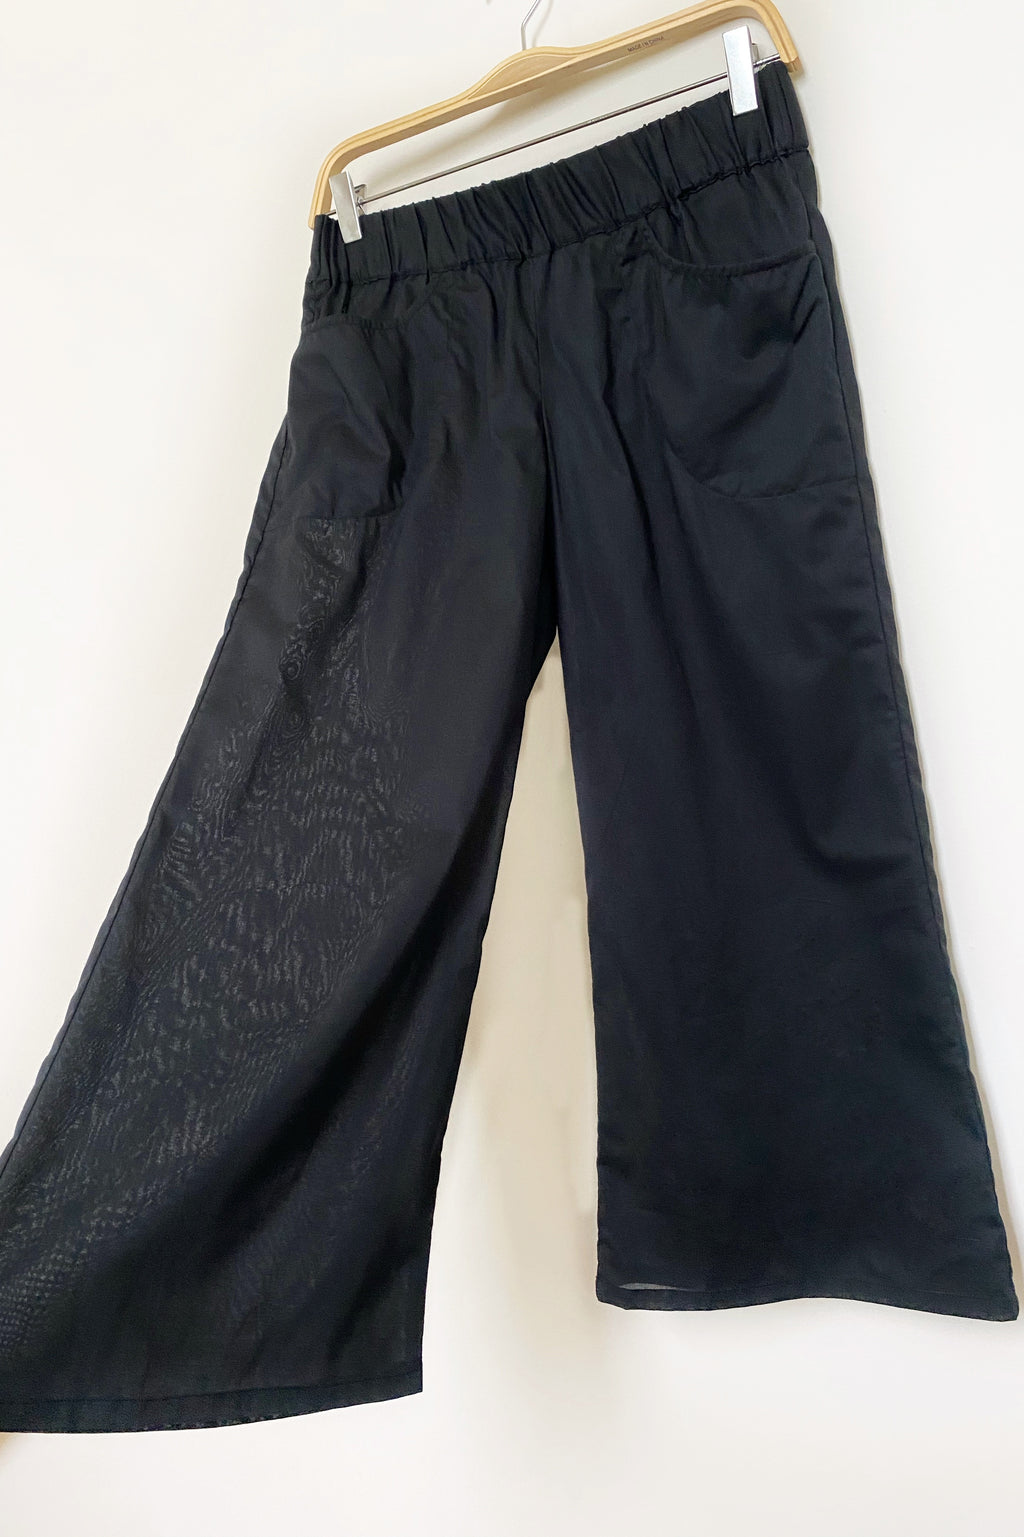 Kelly Pants in Black Organic Cotton